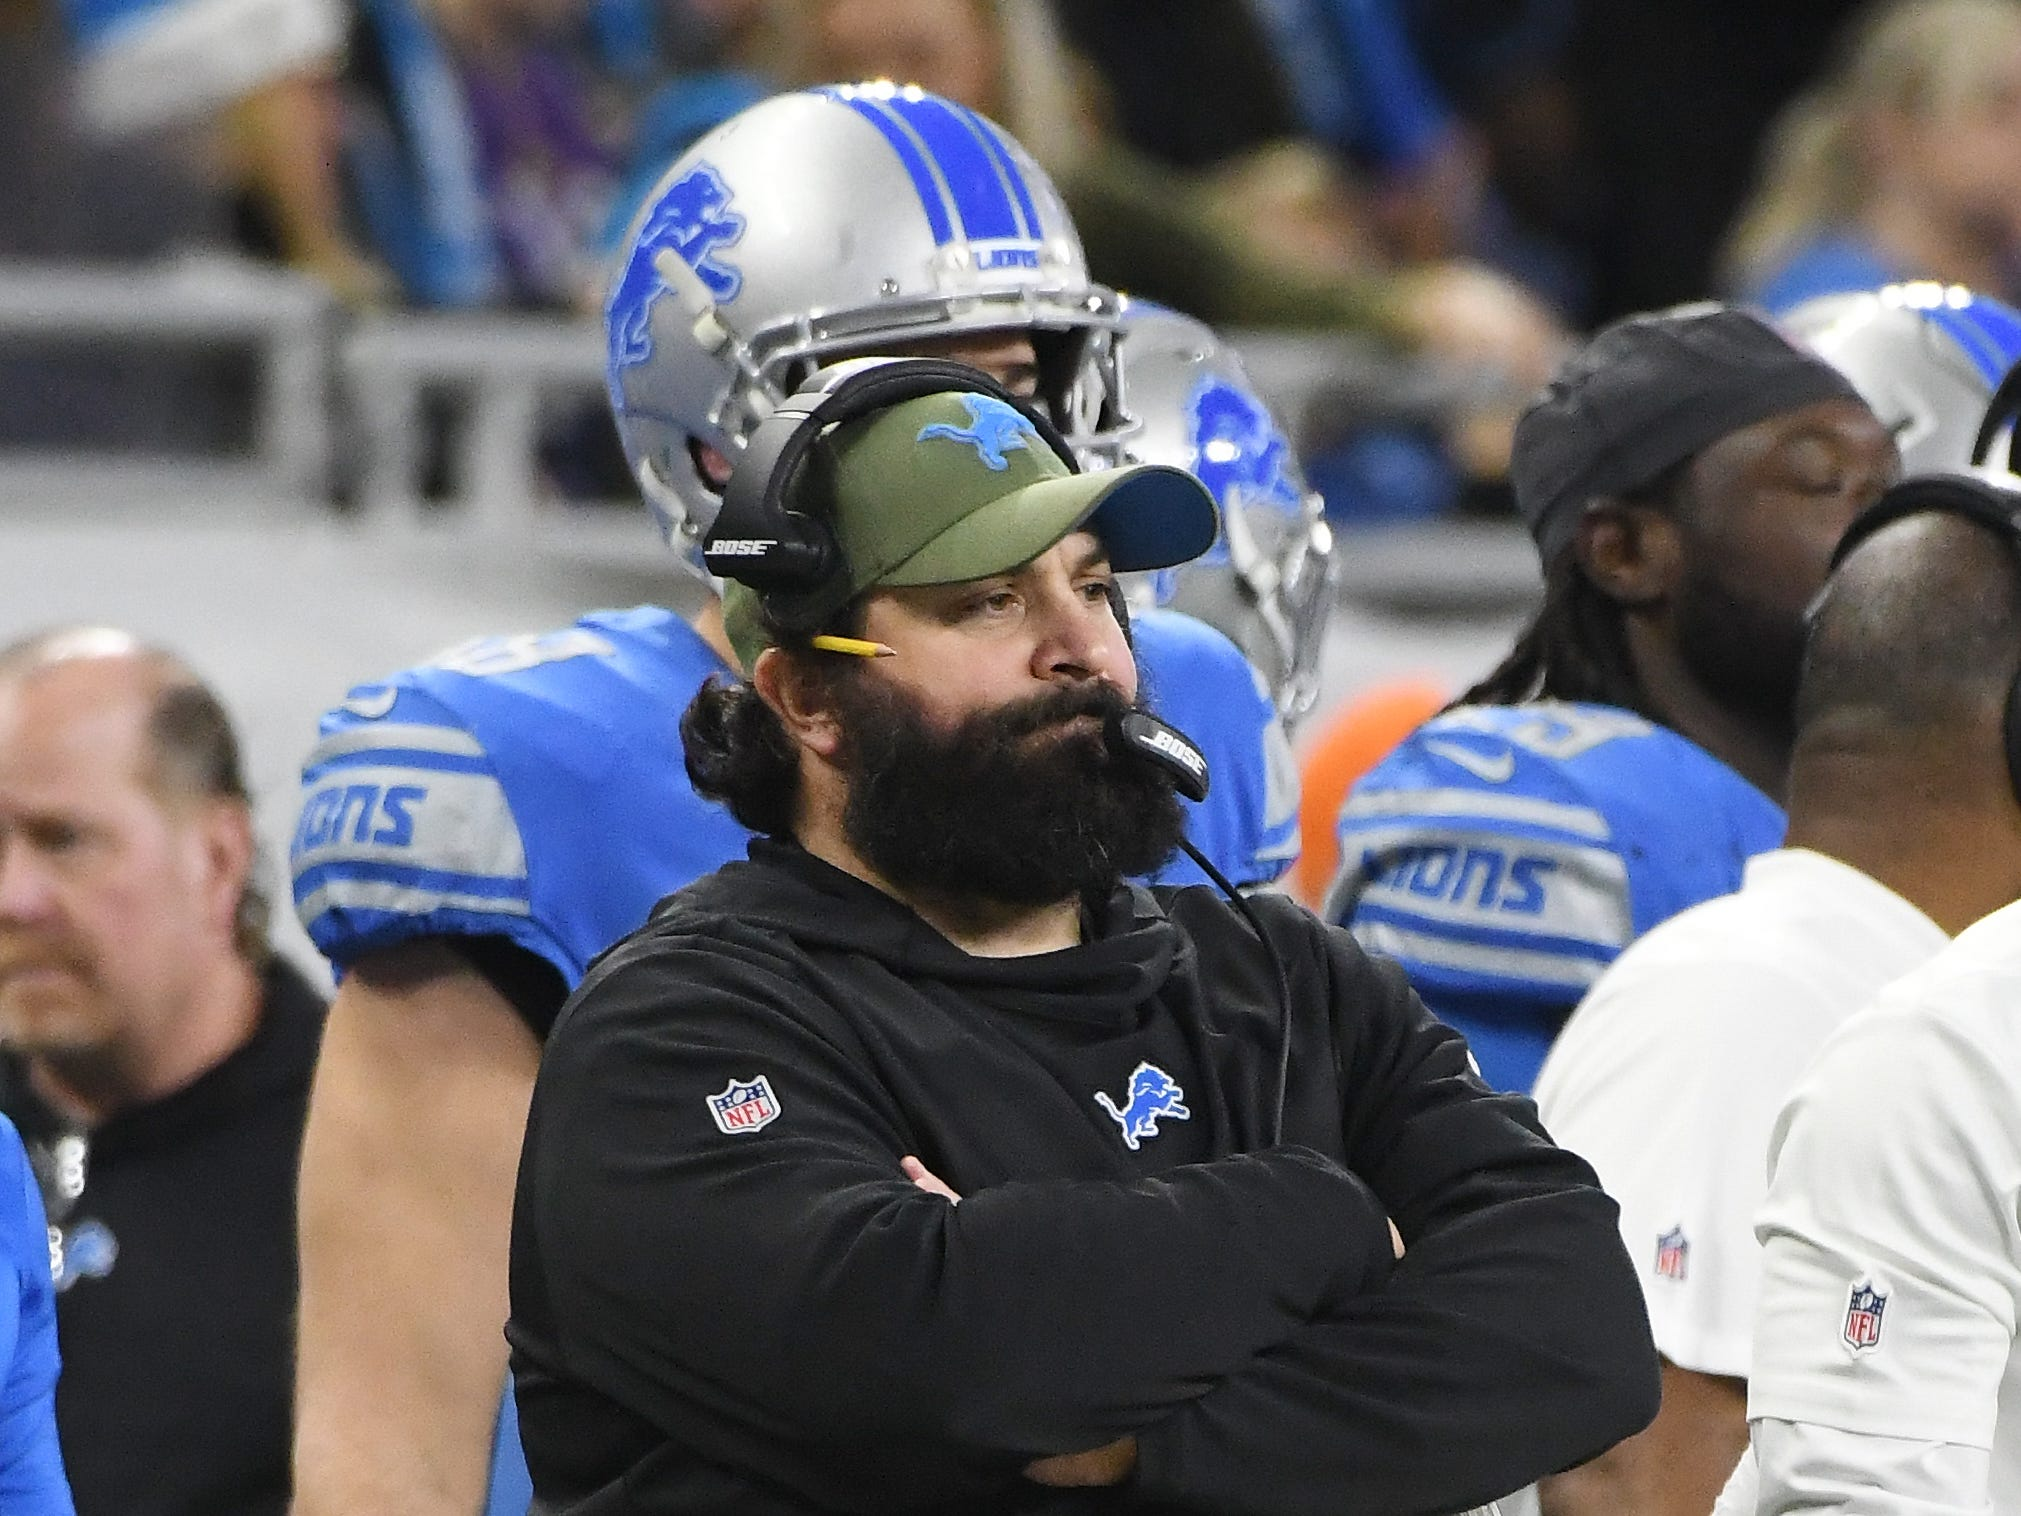 Lions head coach Matt Patricia on the sidelines in the fourth quarter.